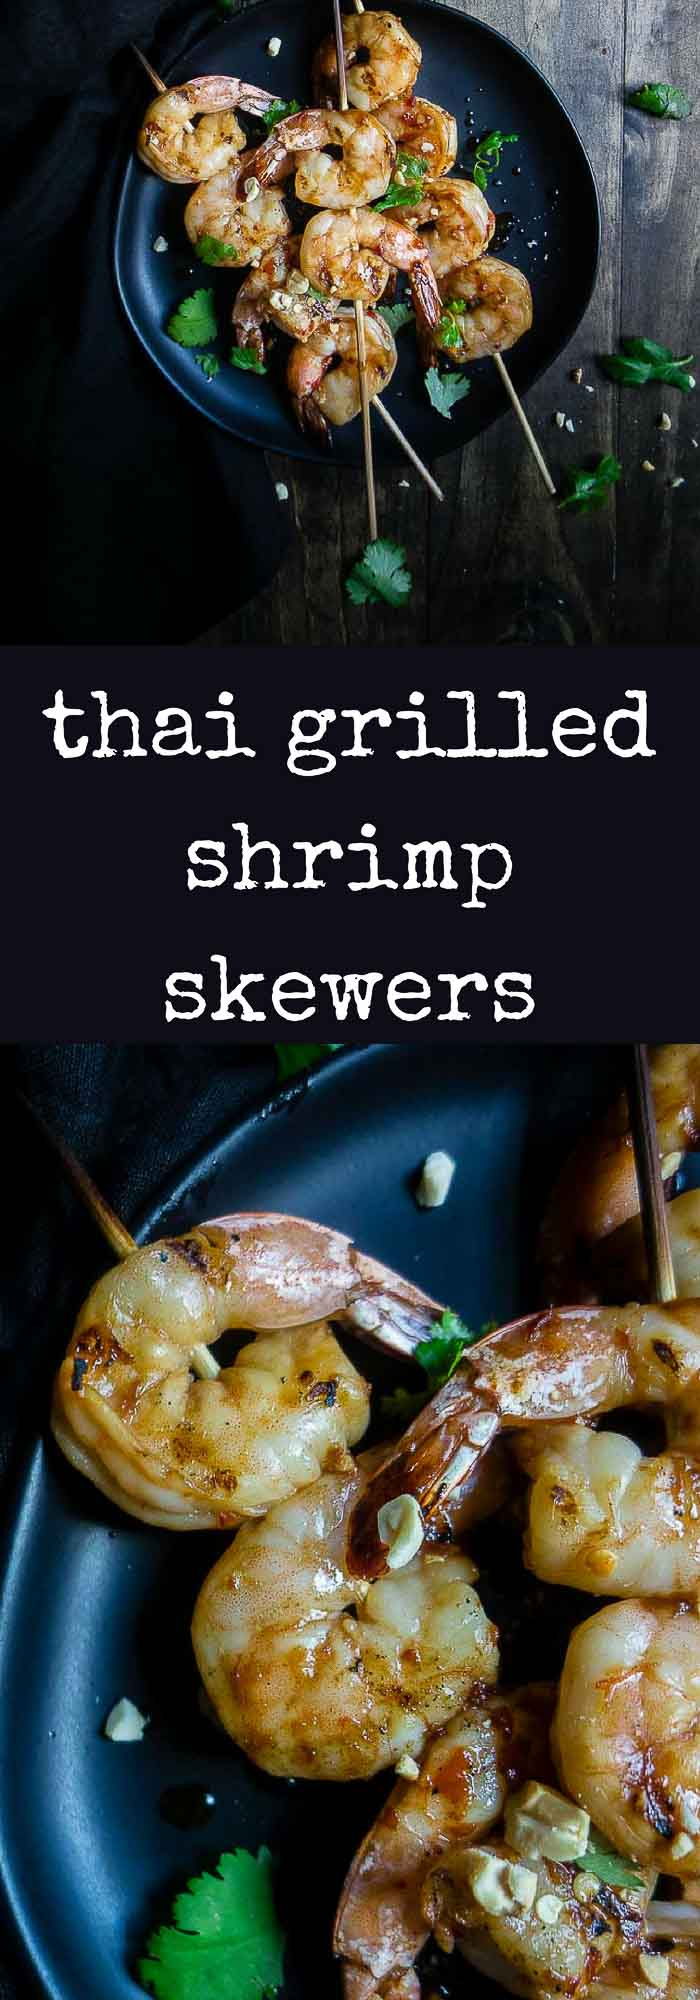 These Thai Grilled Shrimp Skewers are the most amazingly flavorful juicy, succulent shrimp you\'ll ever make, served with Thai coconut sticky rice! BEST SHRIMP EVER! I love these things.nam prik shrimp | grilled shrimp | thai marinated shrimp | grilled shrimp | chili lime shrimp | grilled thai shrimp skewers | healthy grilled shrimp | healthy shrimp recipes | thai coconut sticky rice | coconut rice | how to make sticky rice | Thai takeout recipes | thai fusion